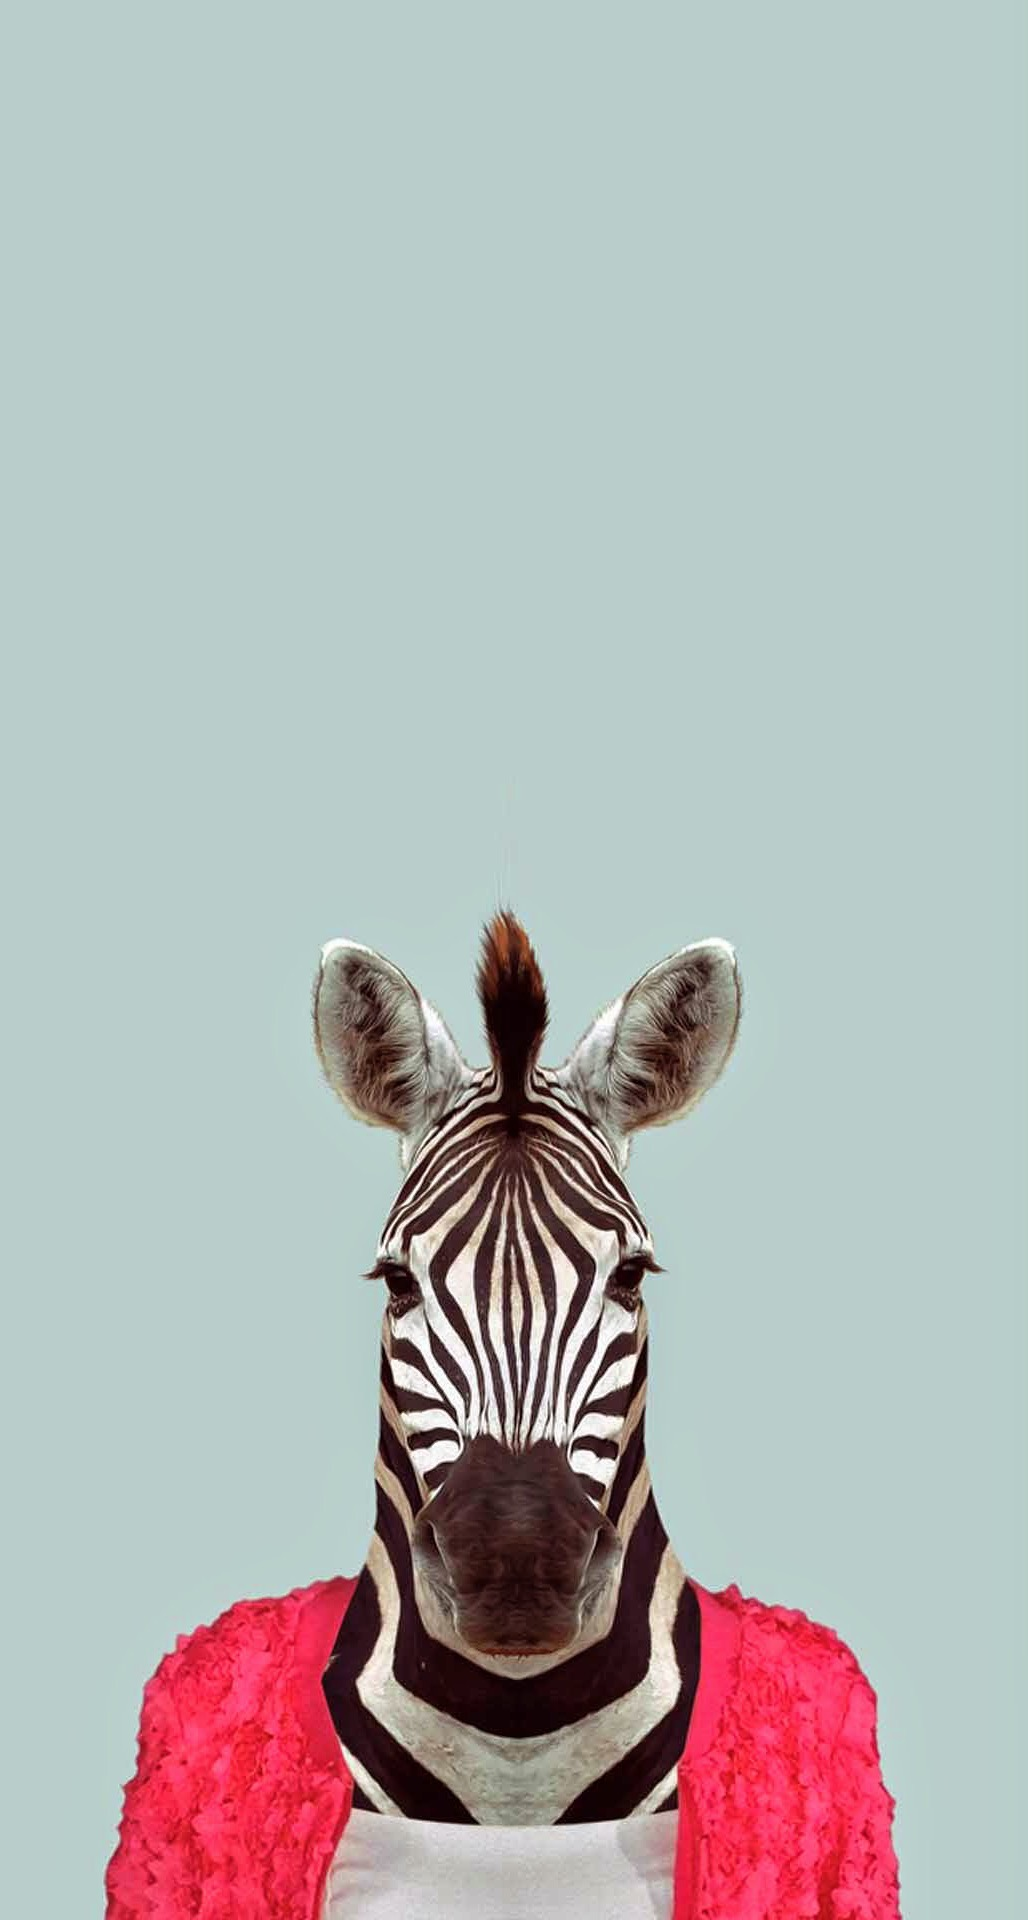 Zebra-Funny-Animal-Portrait-iPhone-6-Plus-HD-Wallpaper.